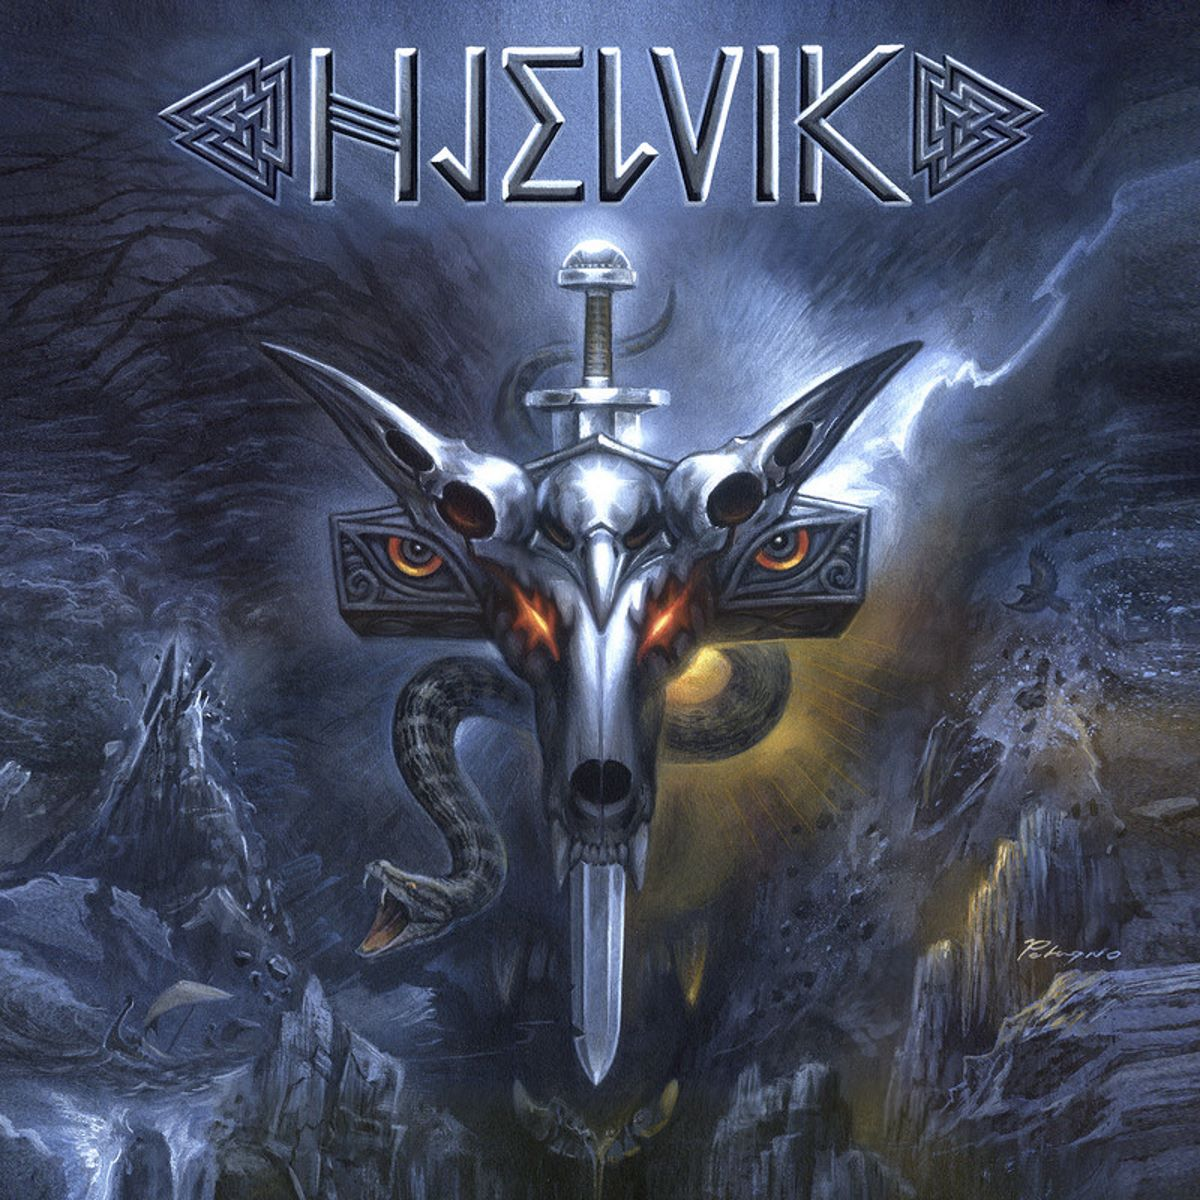 hjelvik - welcome to hel - album cover